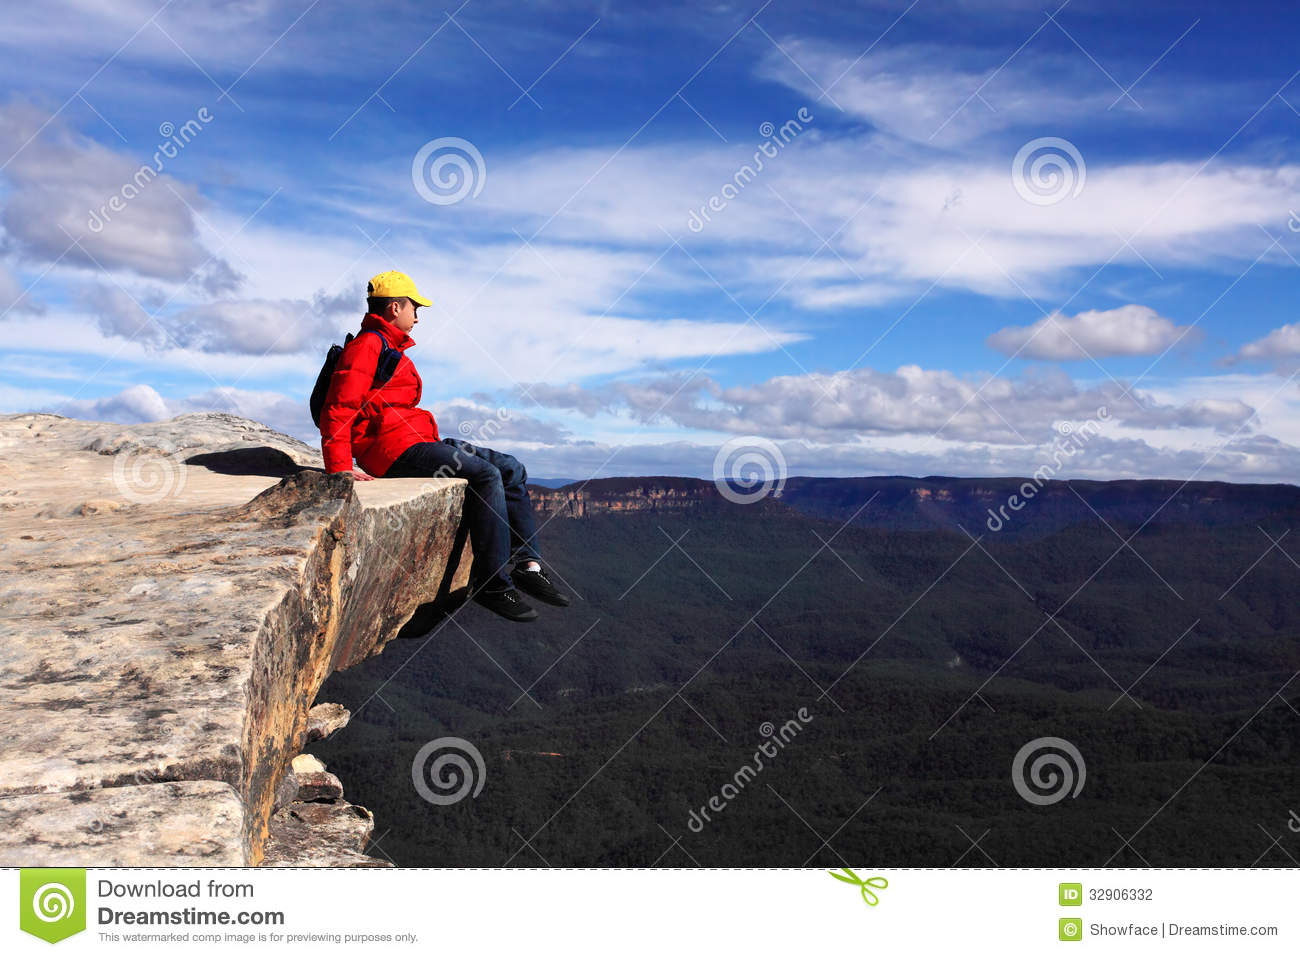 Hiker on mountain ledge - risk freedom adventure s